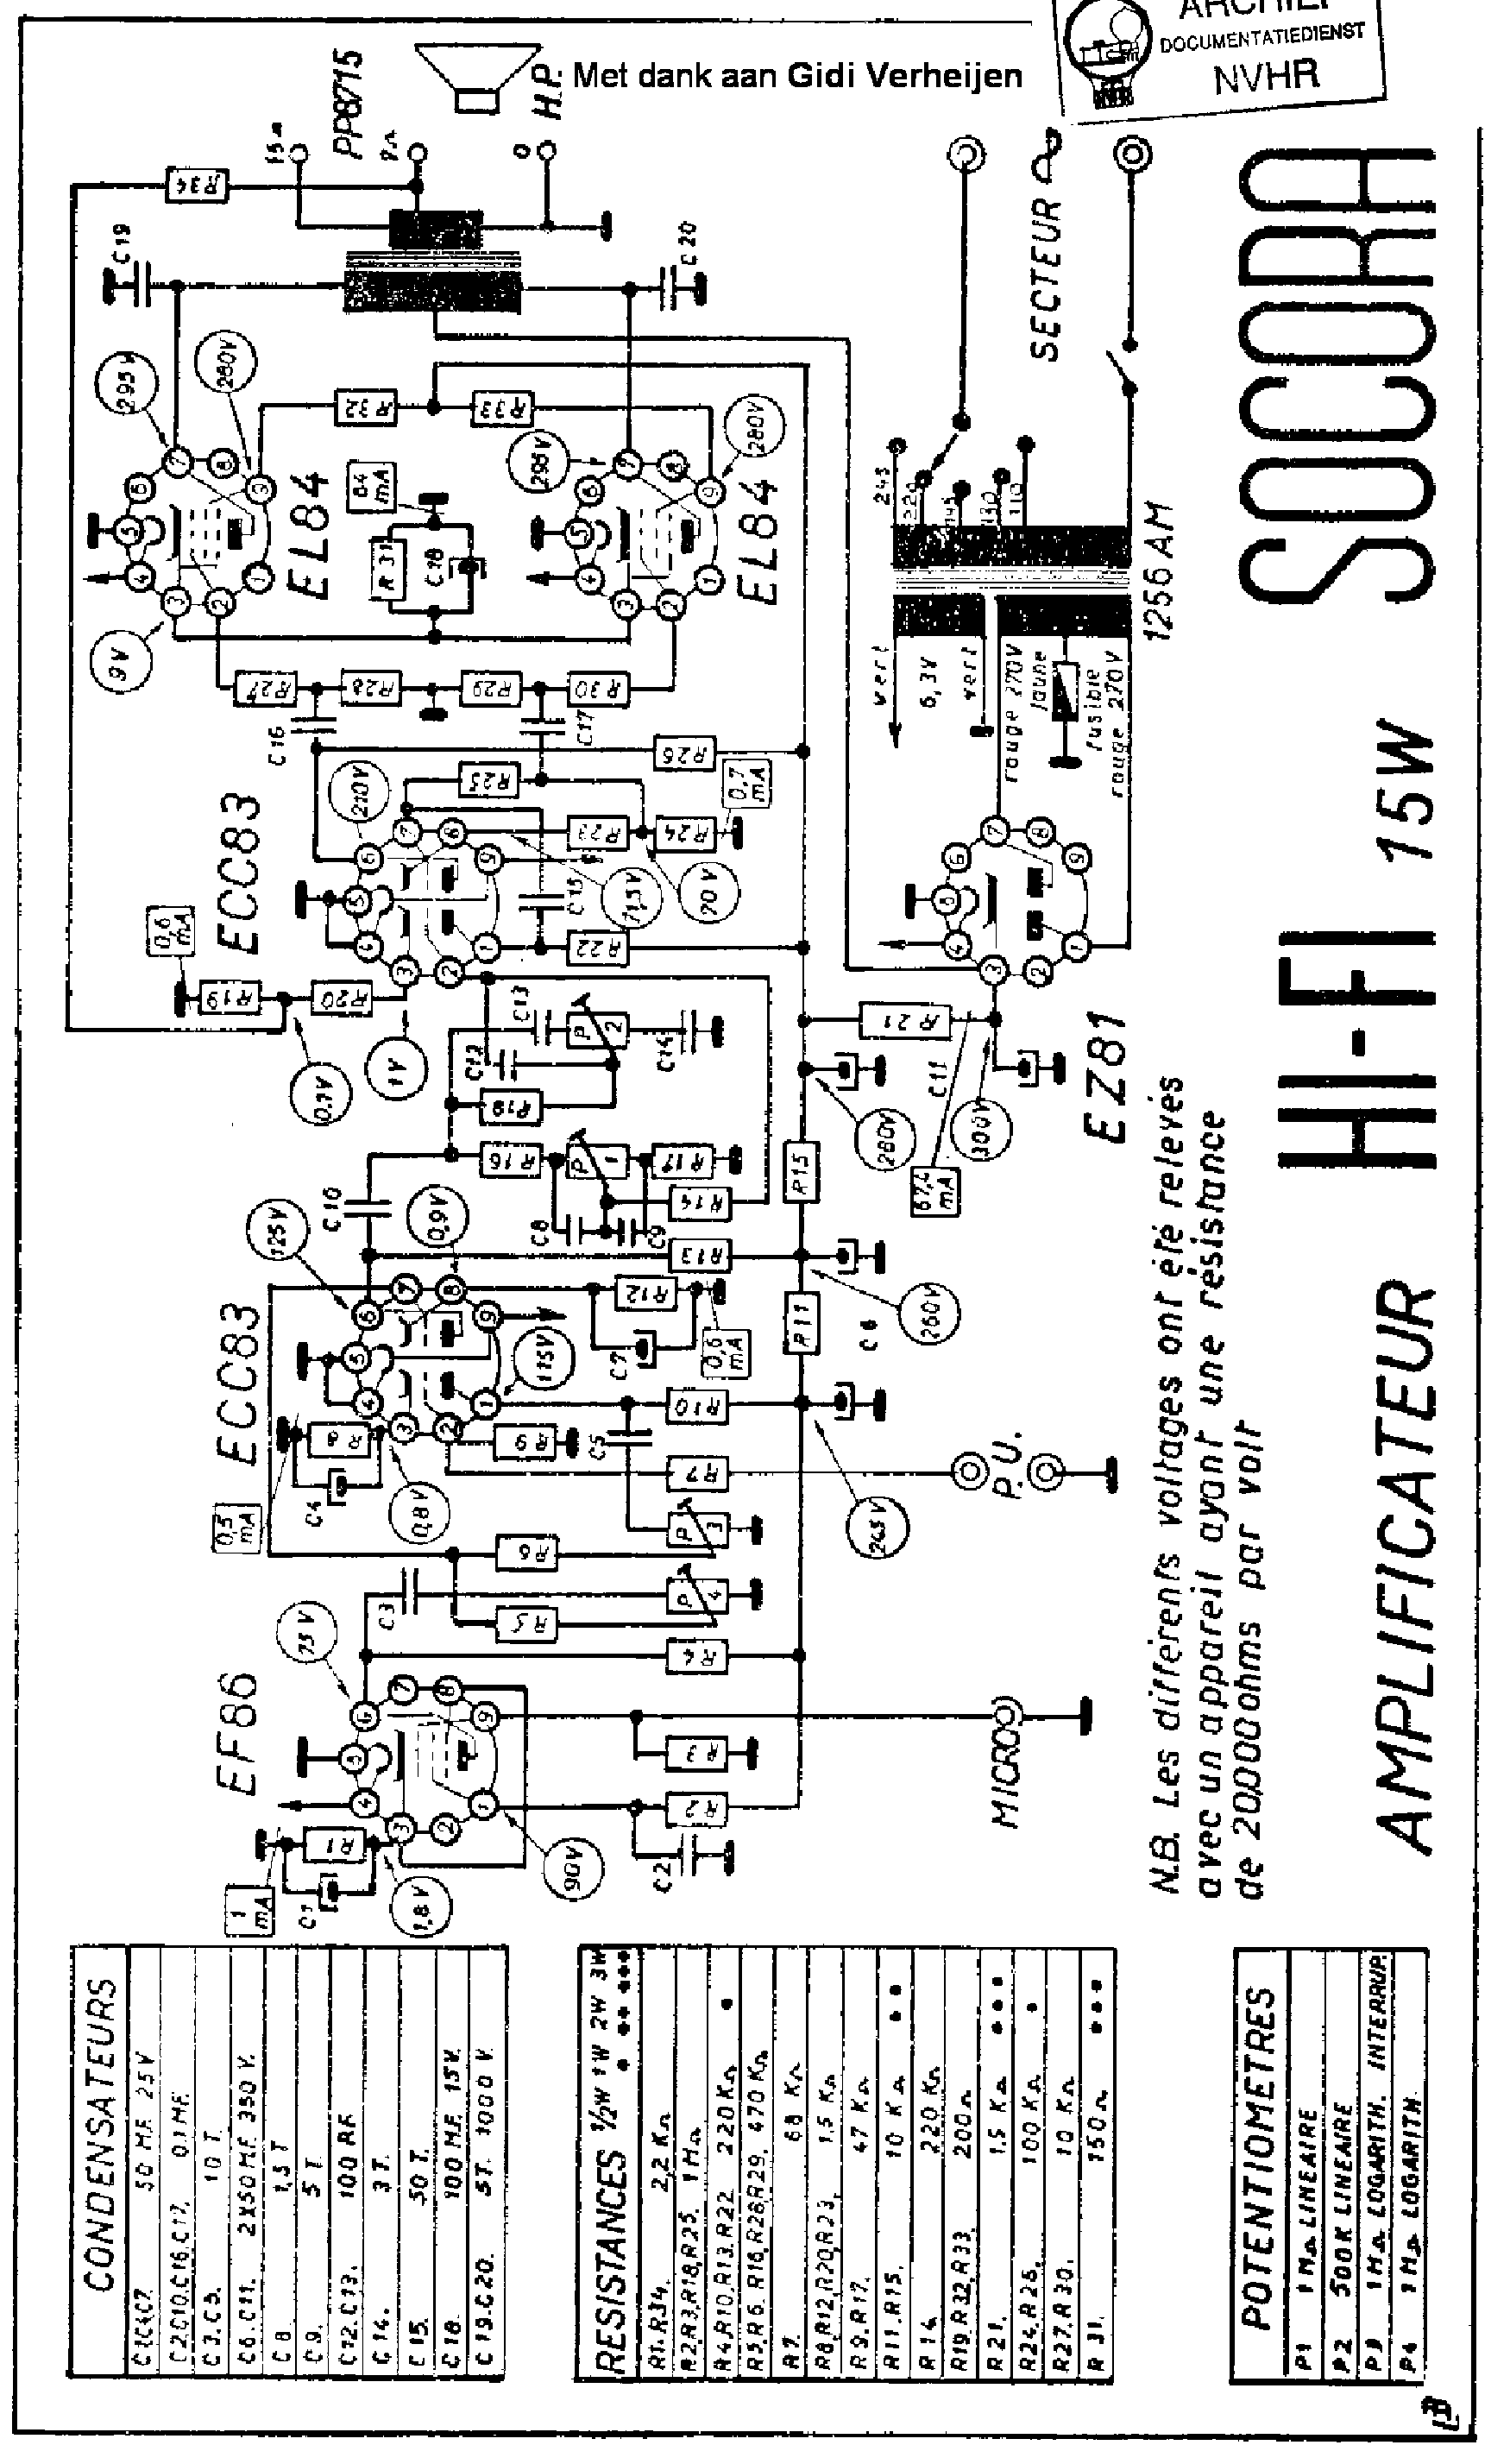 Socora Ampli 15w Hifi 2xel84 Audio Amplifier Sch Service Manual Download Schematics Eeprom